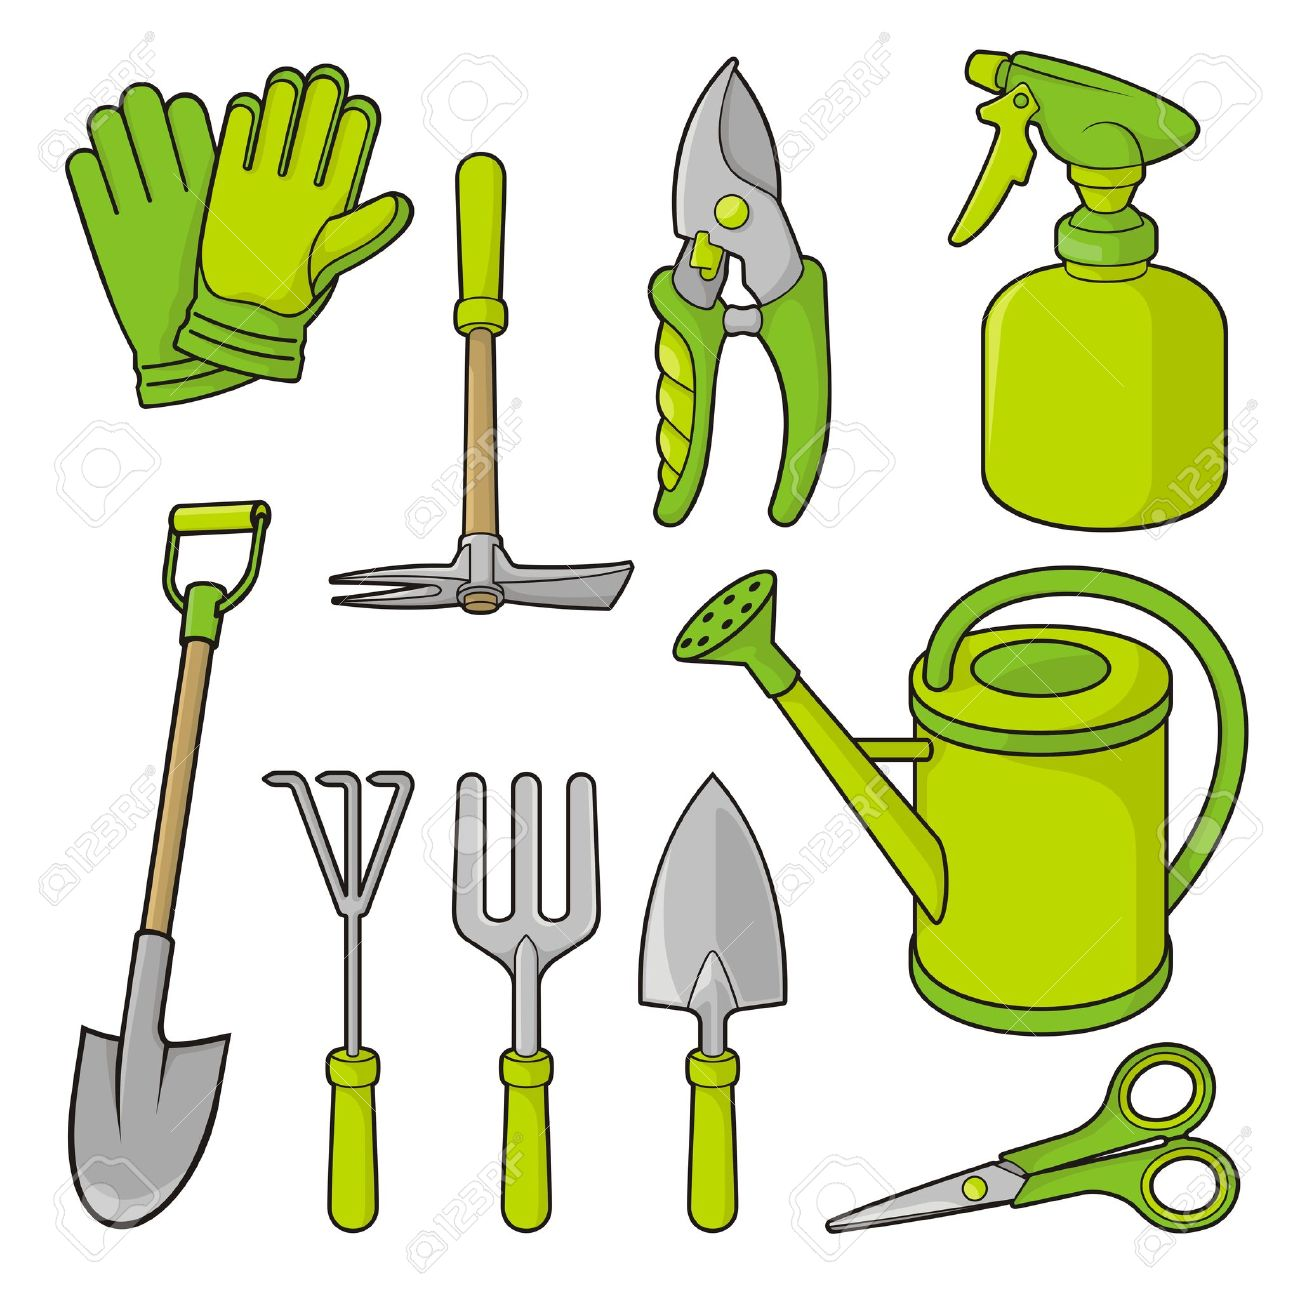 12,473 Gardening Tools Stock Illustrations, Cliparts And Royalty ...